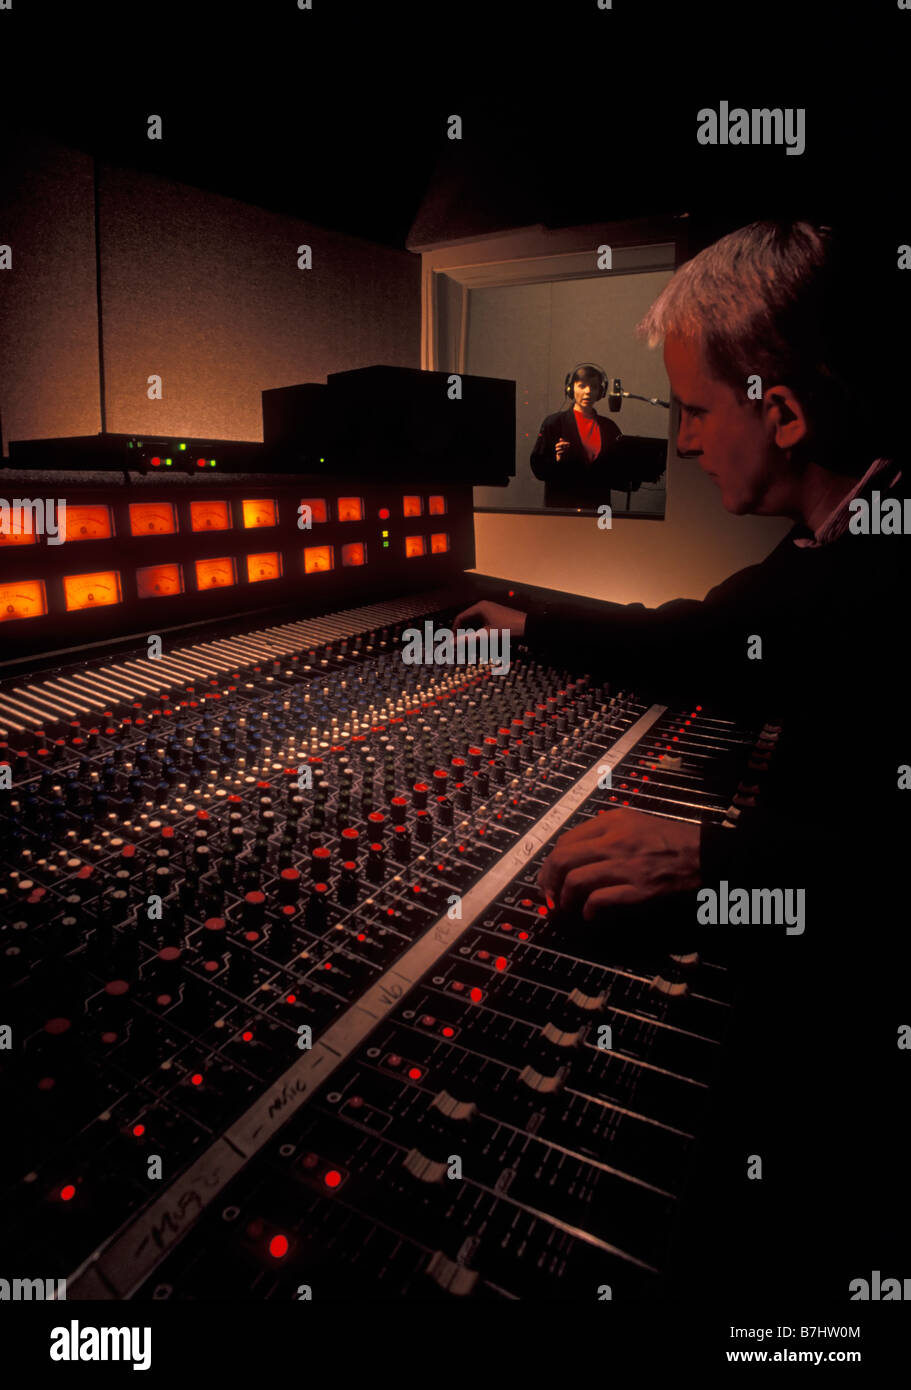 Sound Engineer and talent in sound recording studio. Vancouver, BC, Canada. Stock Photo